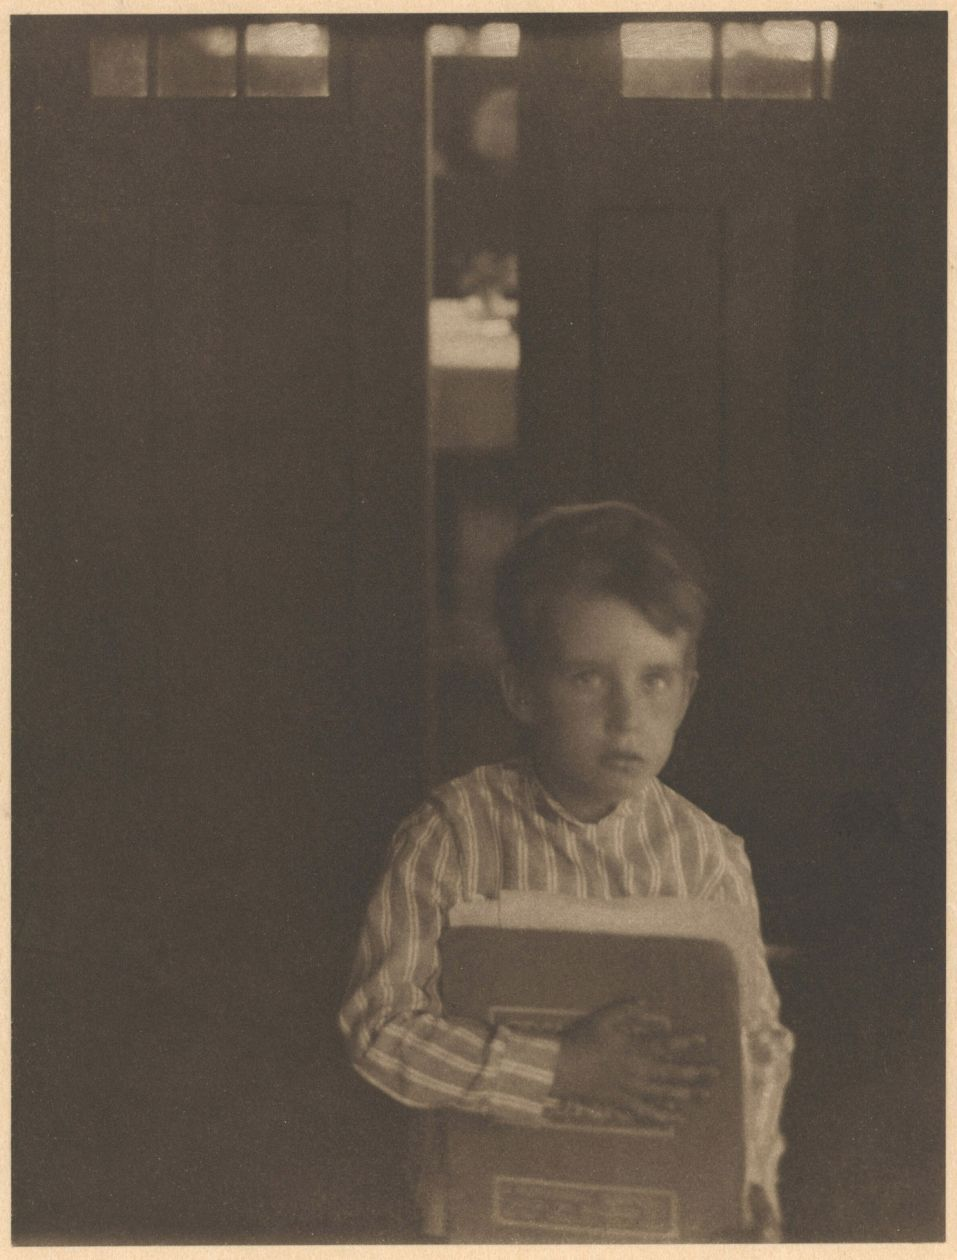 Boy with Camera Work (c. 1905) by Clarence White